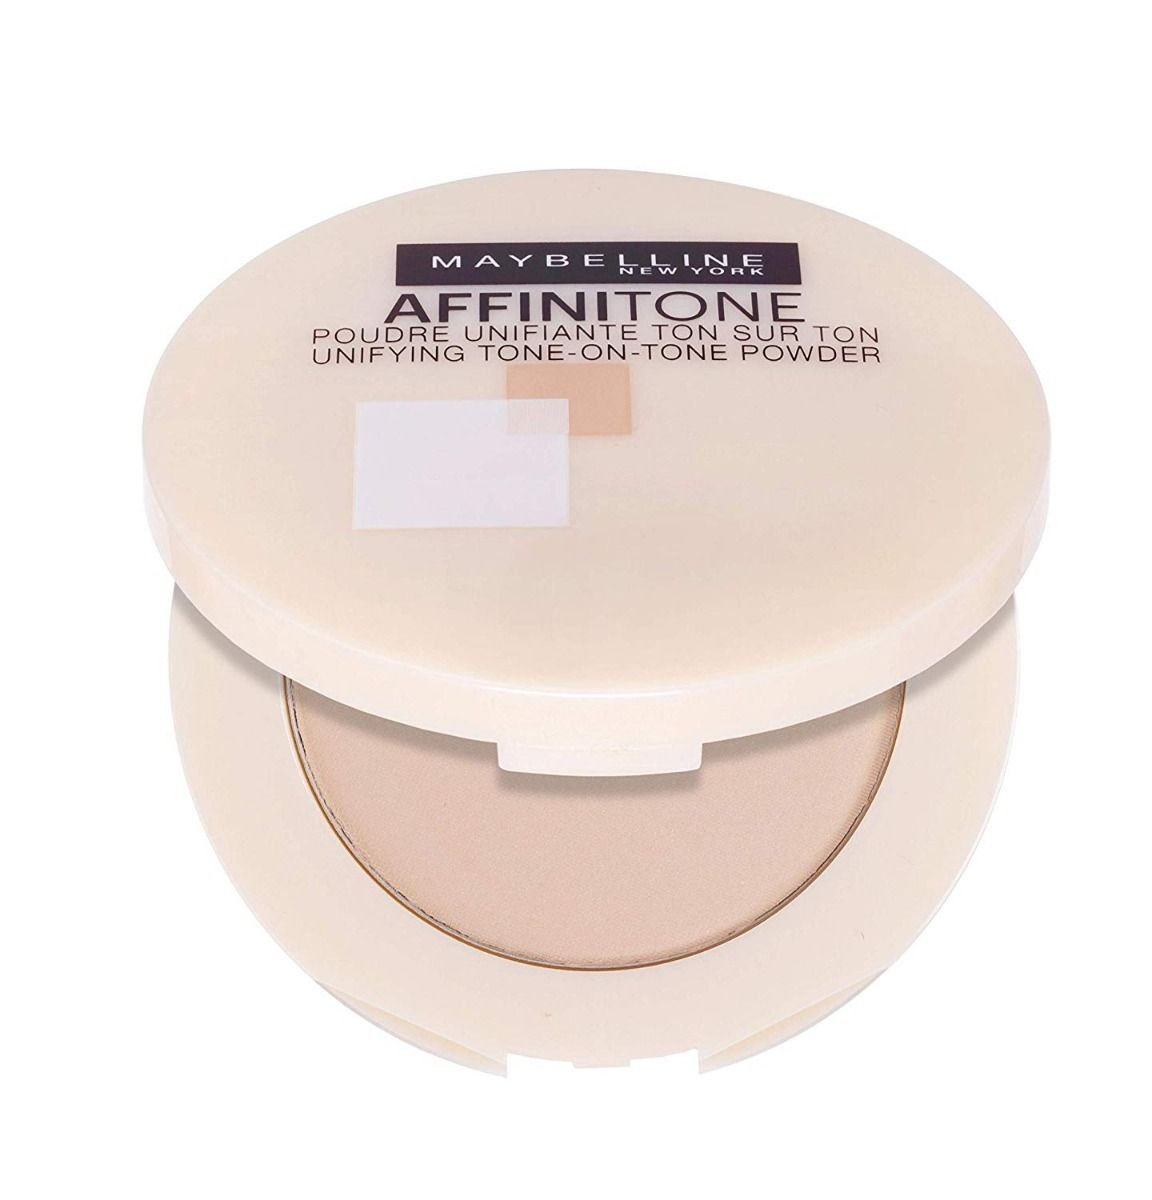 Maybelline Affinitone Powder 21 Nude